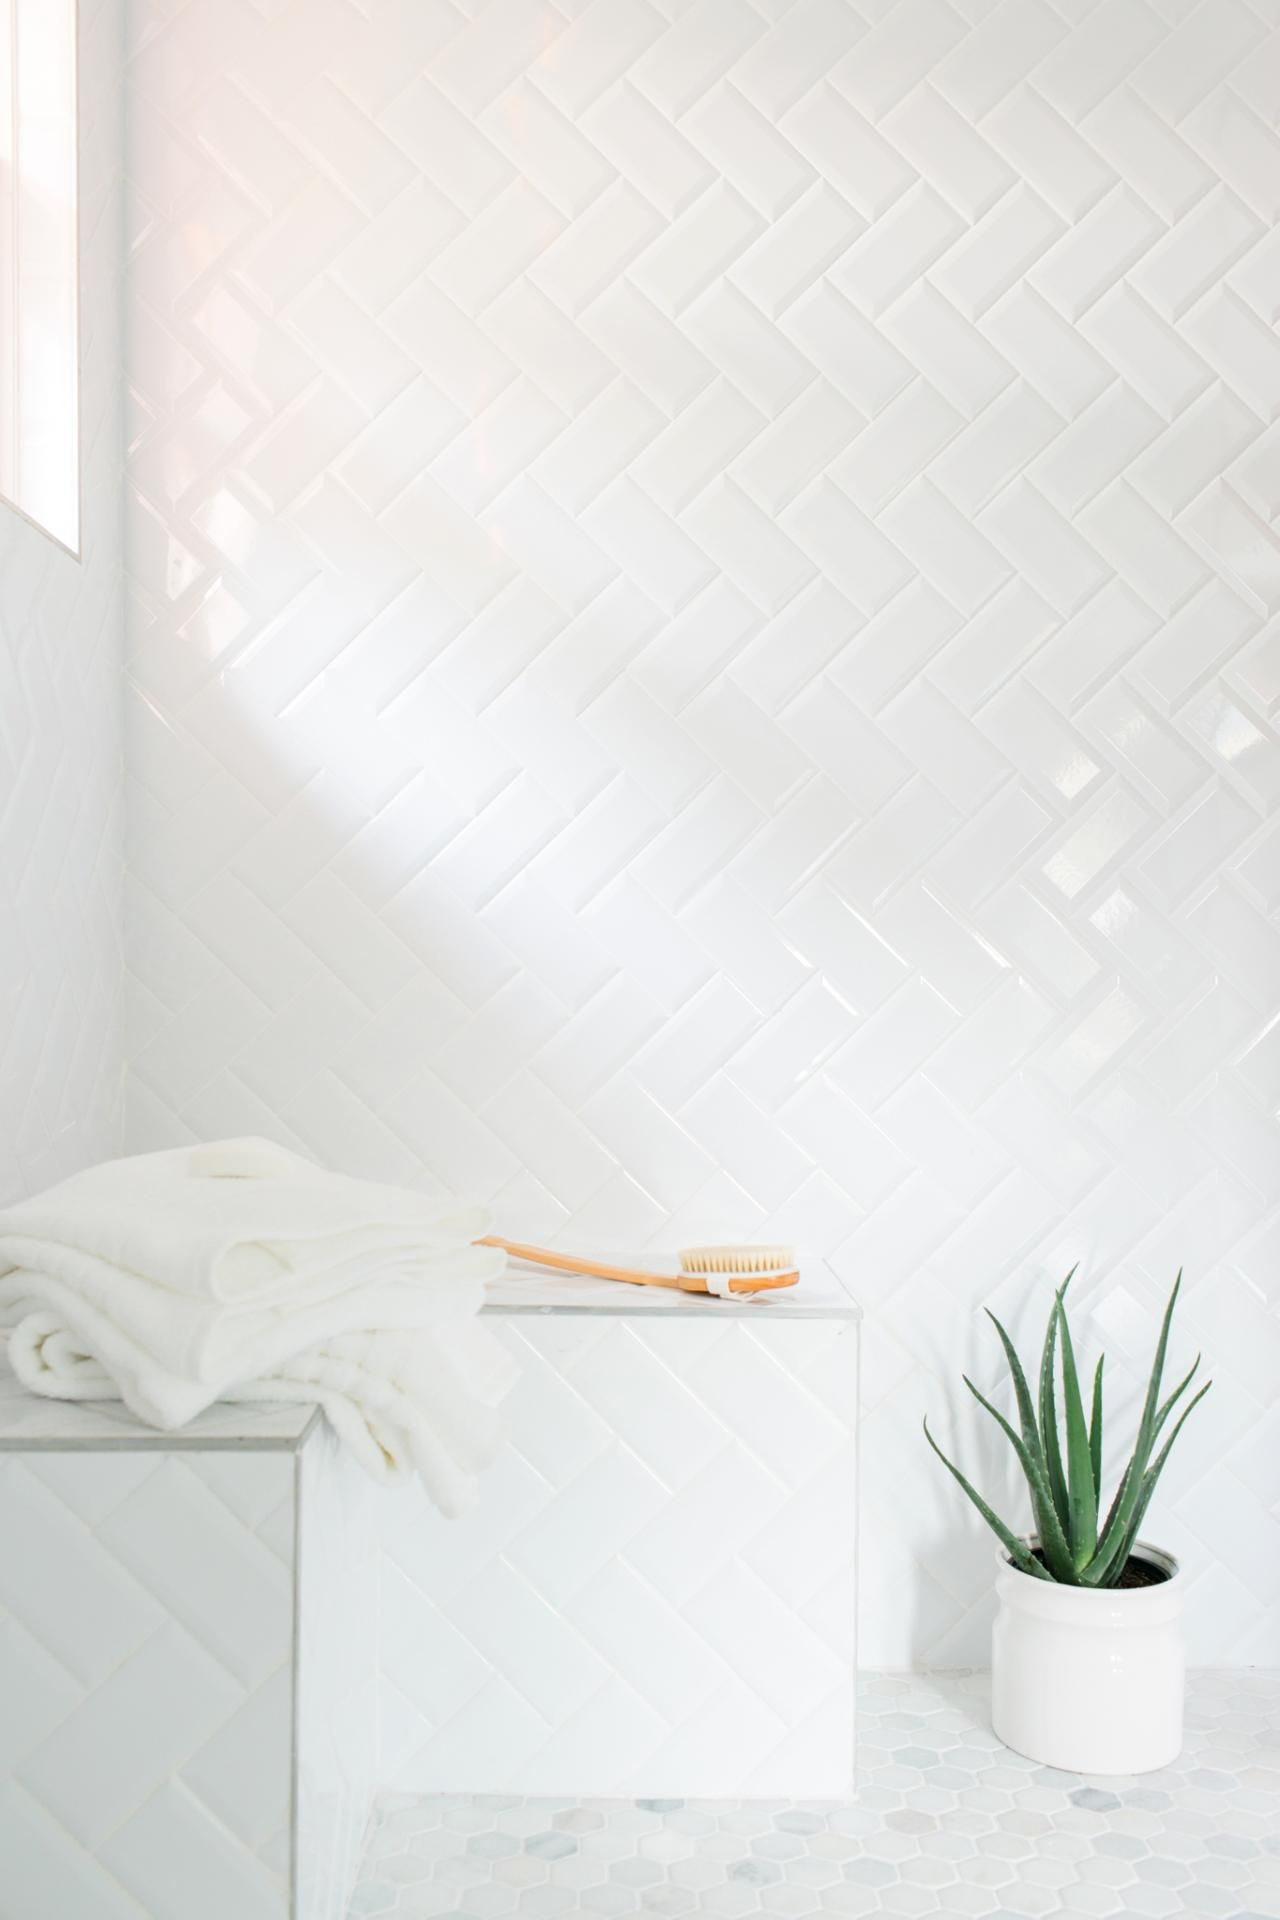 20 Fresh Bathroom Tile Trends to Look for in 2017 | Pillow beds ...